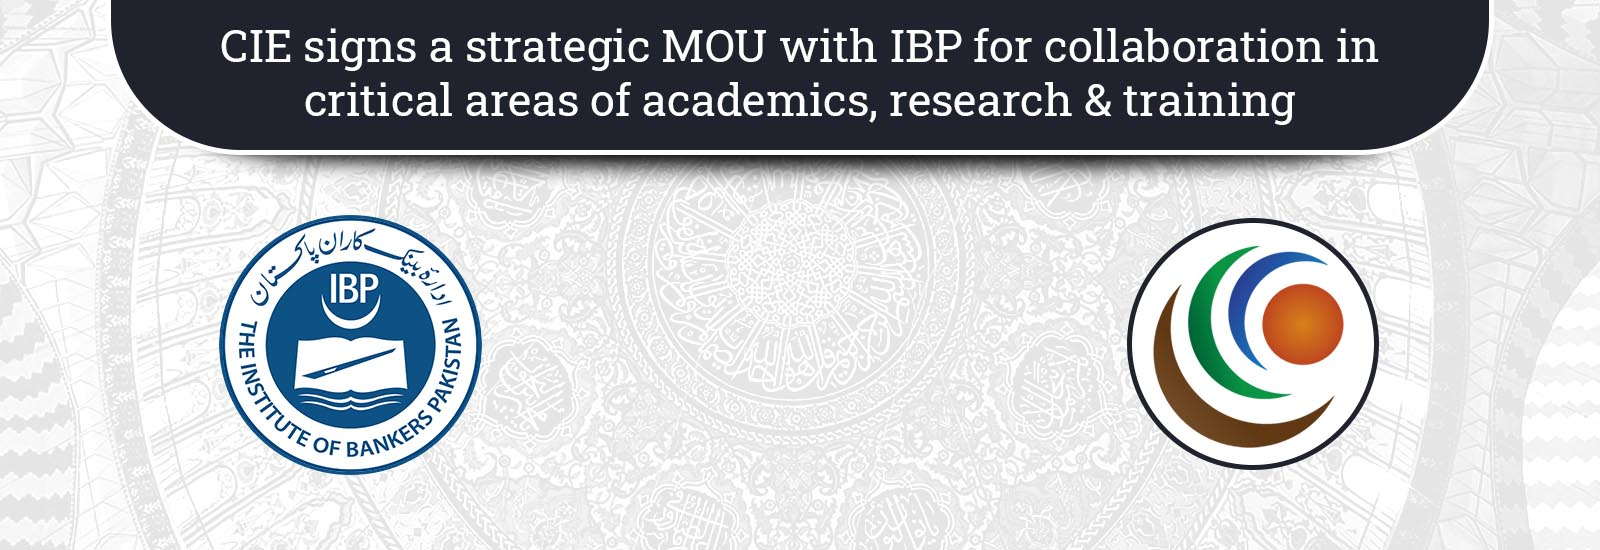 CIE signs a strategic MOU with IBP for collaboration